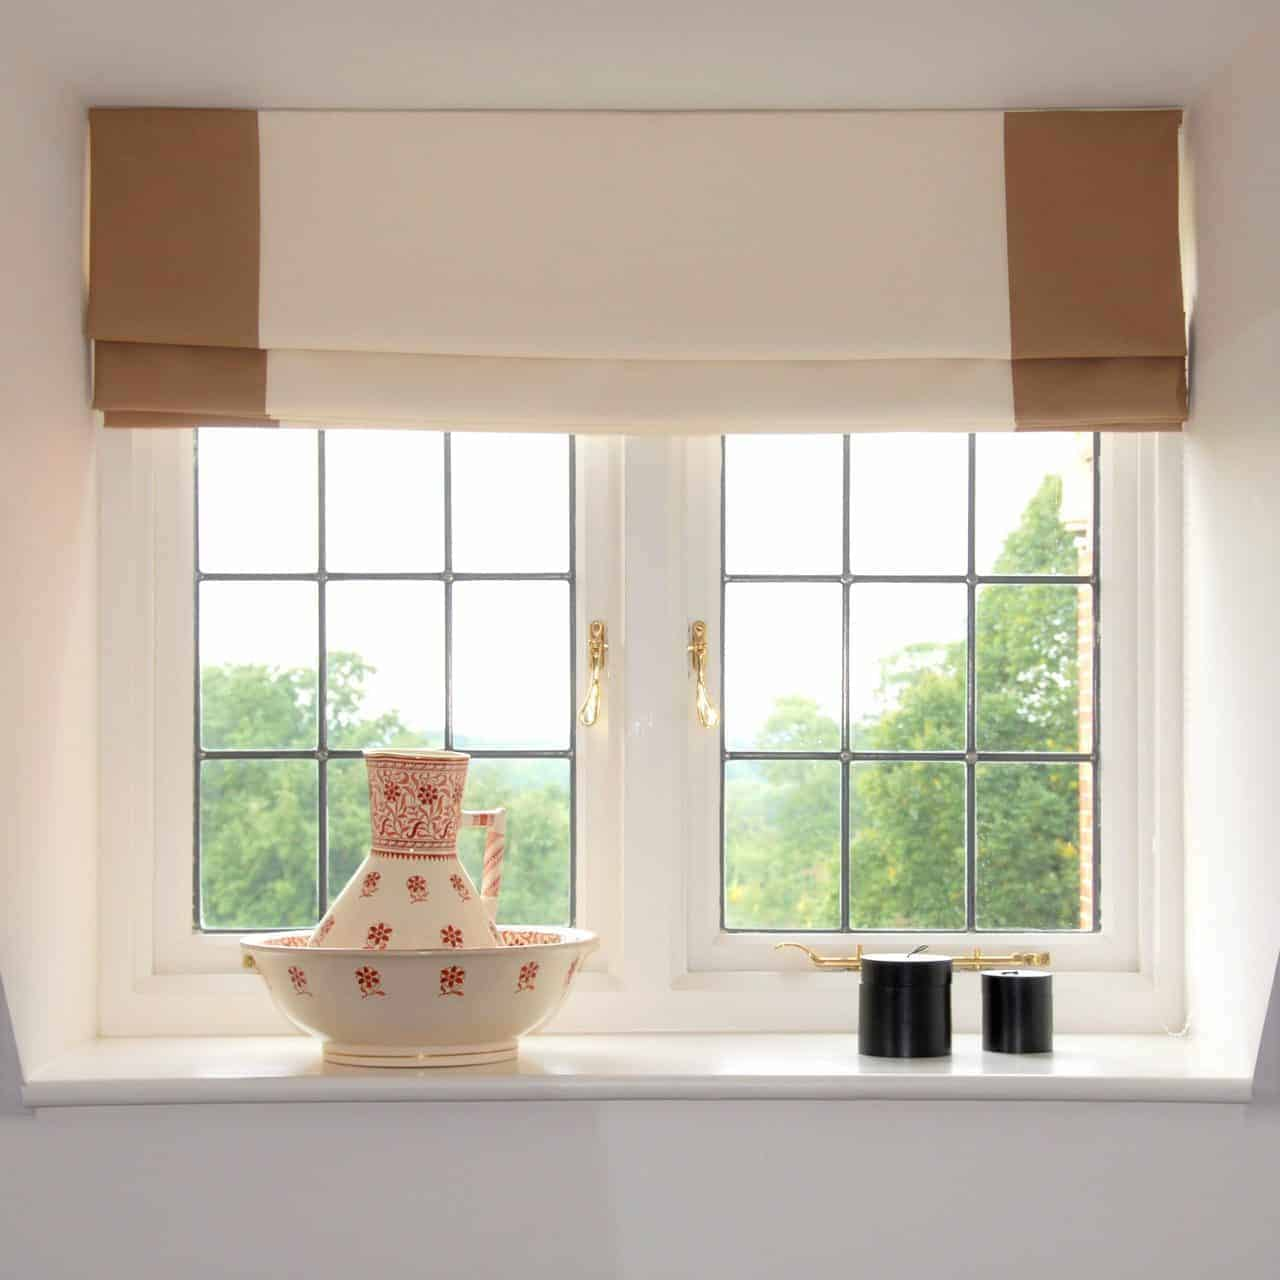 Benefits of Investing in Made-to-Measure Blinds